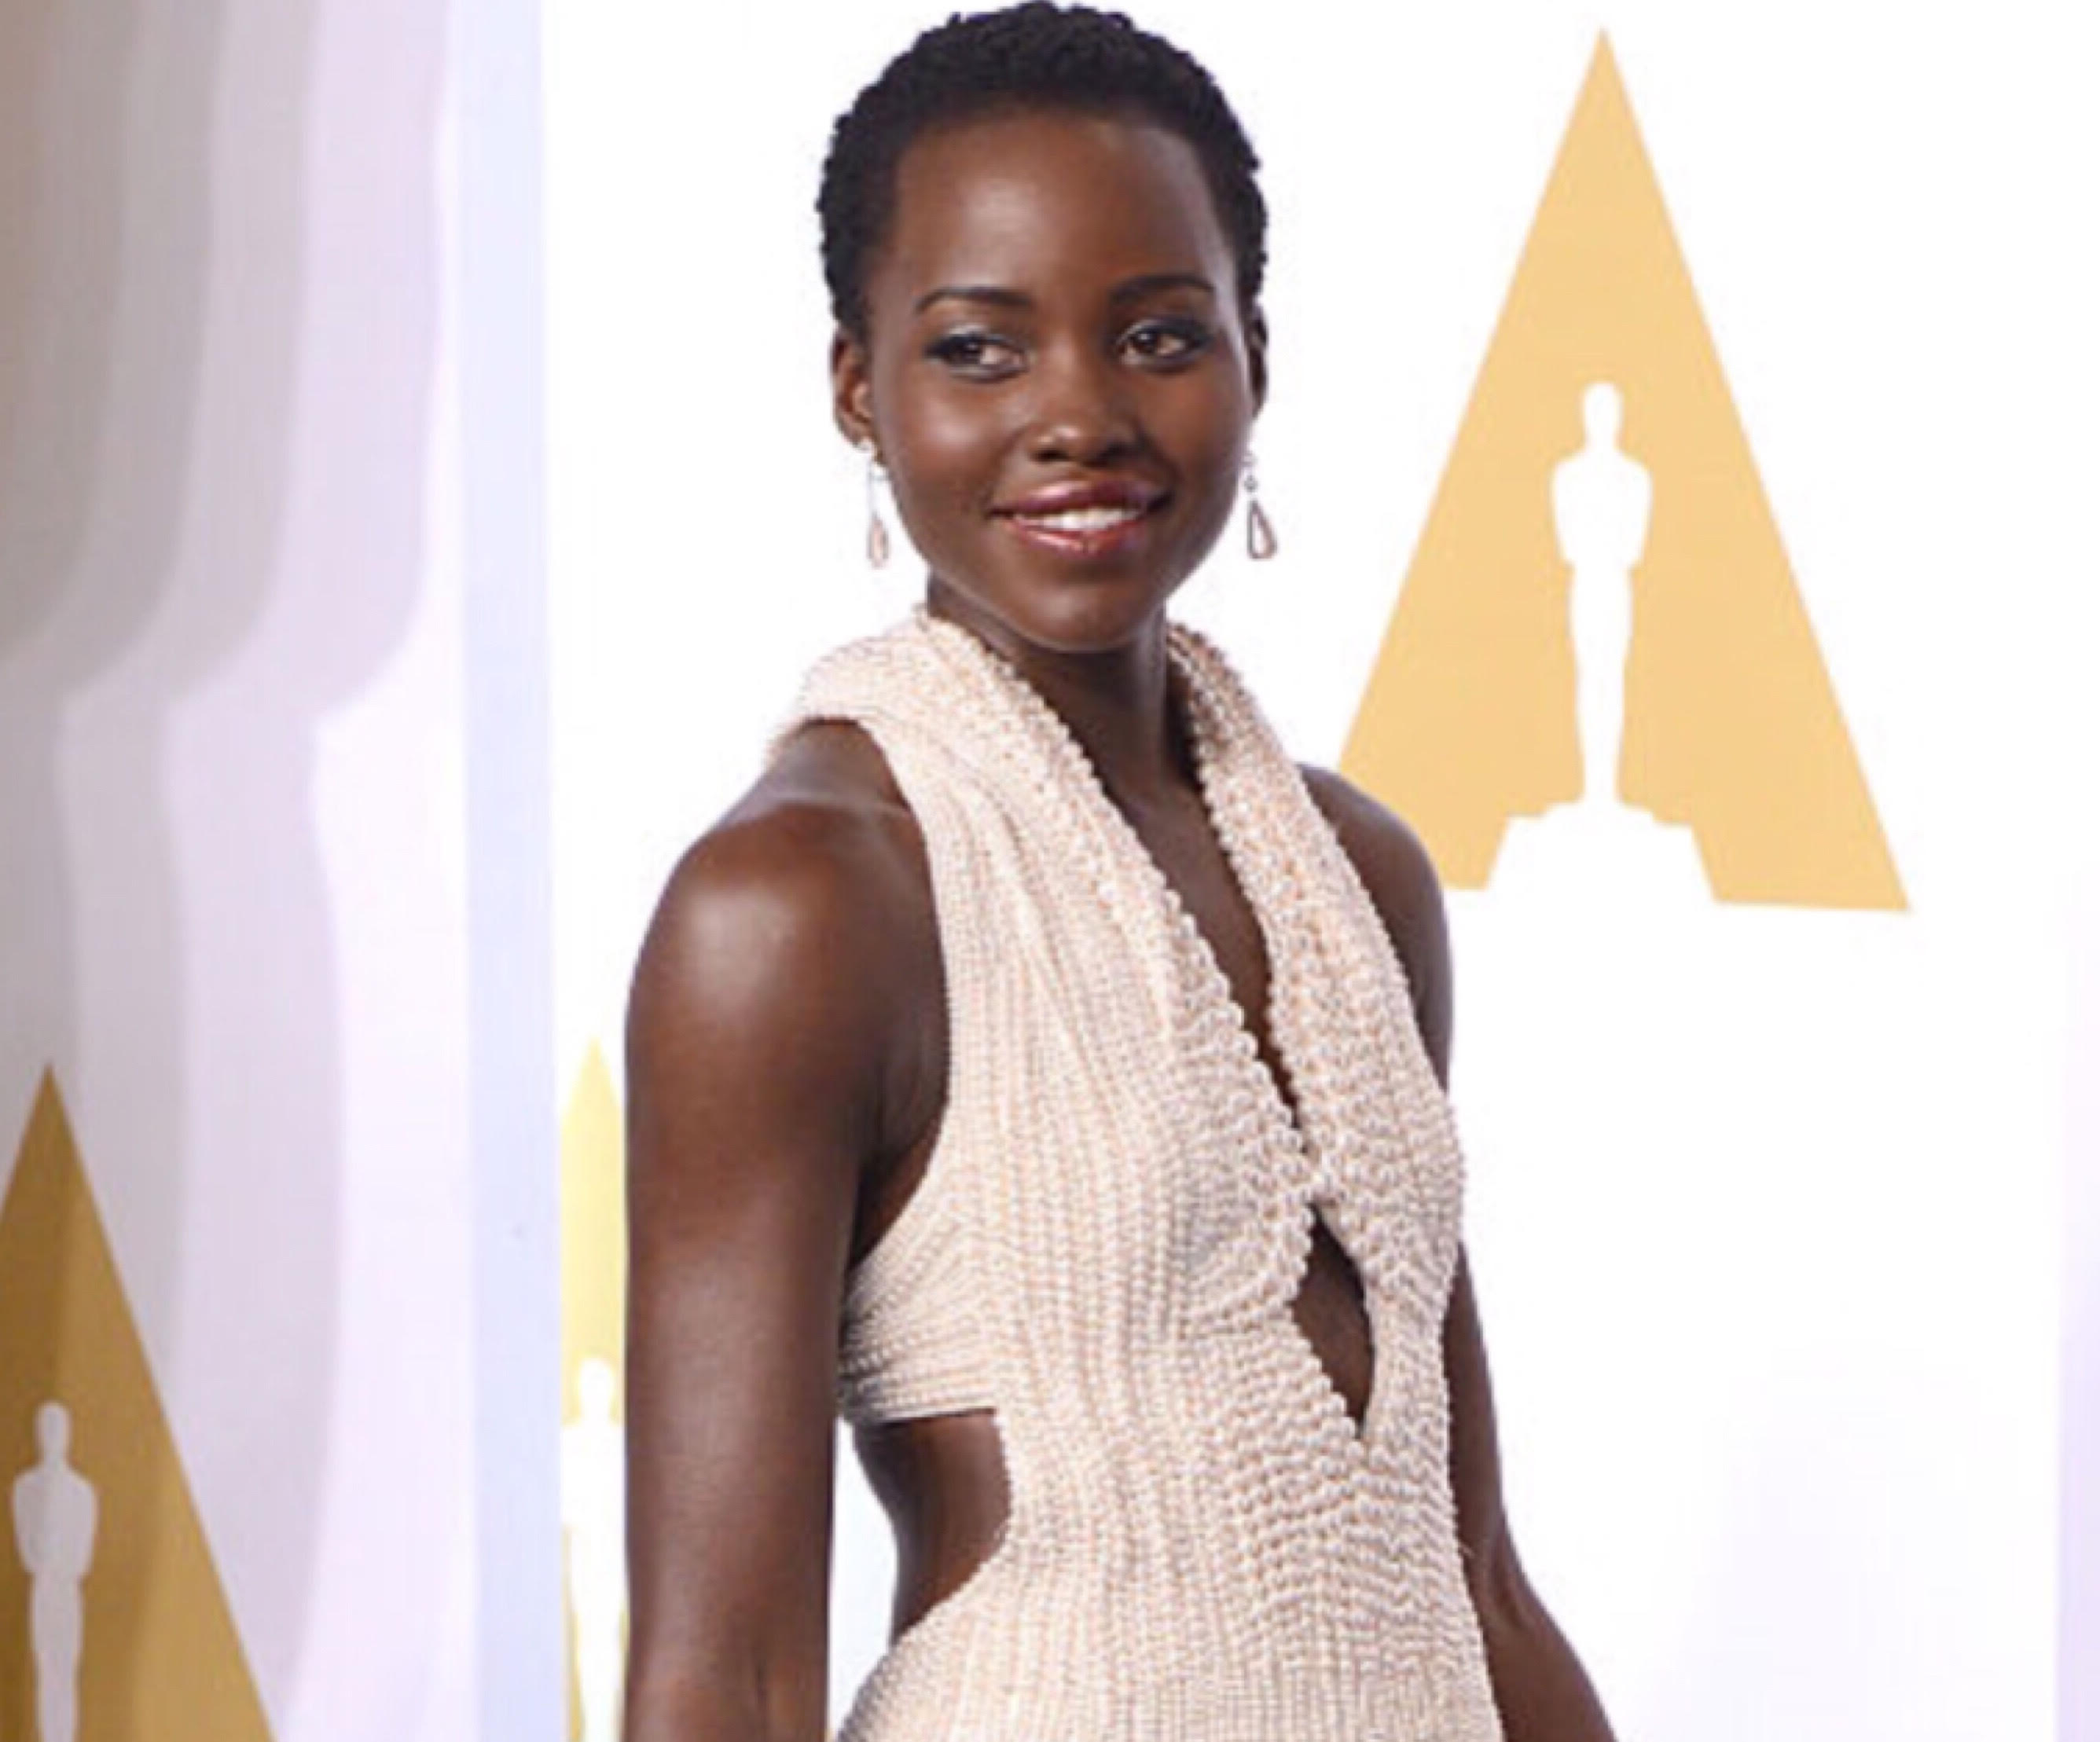 Lupita Nyong'o Is Working On A Children's Book Promoting Self-Image